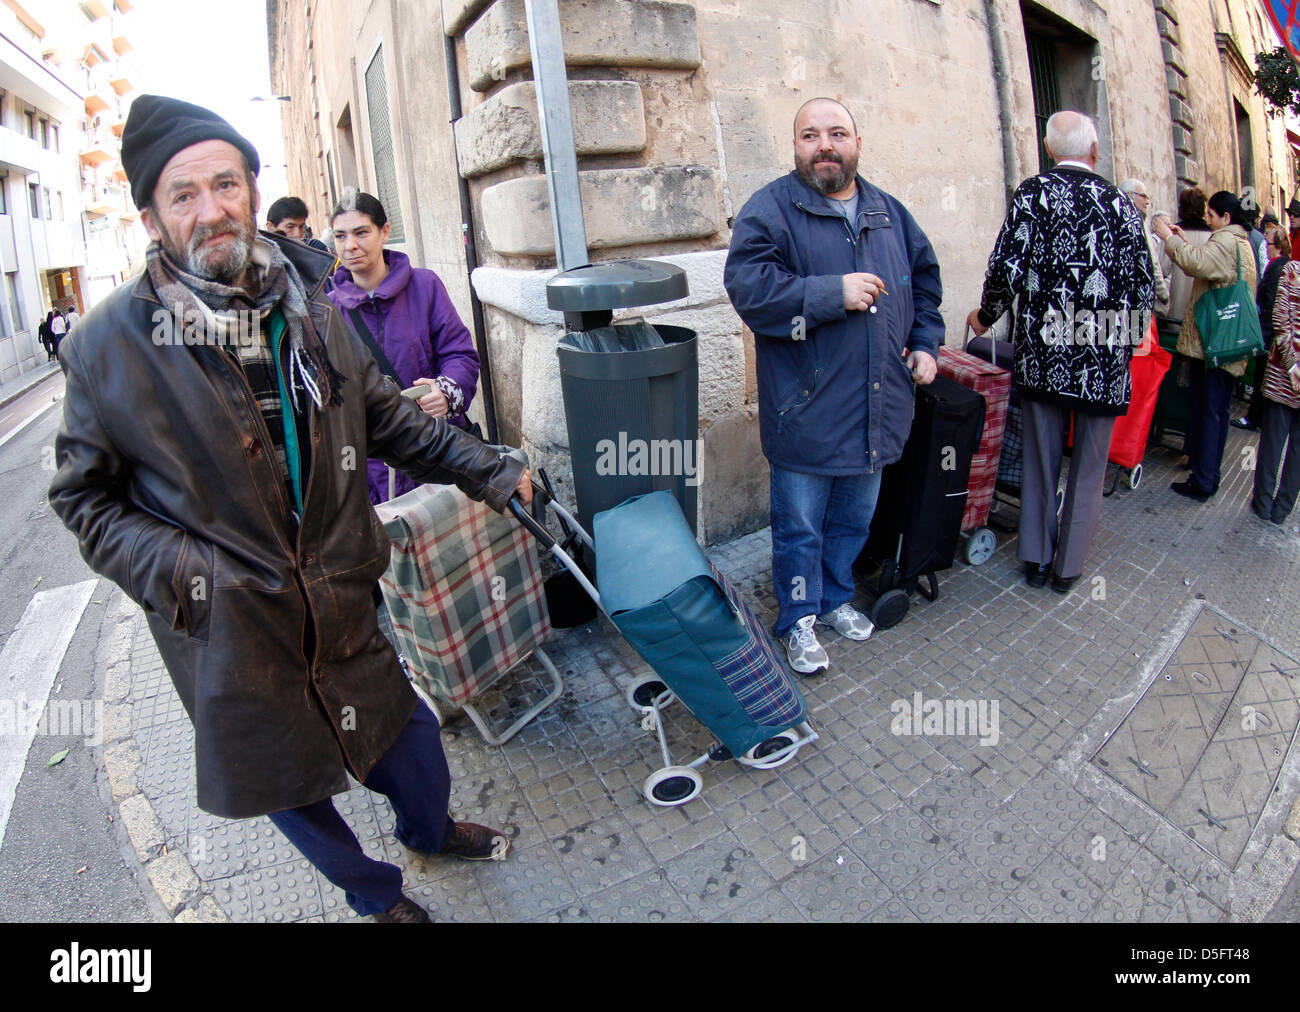 Unemployed or low resources people wait at the door of a charity center for a bag of goods. - Stock Image